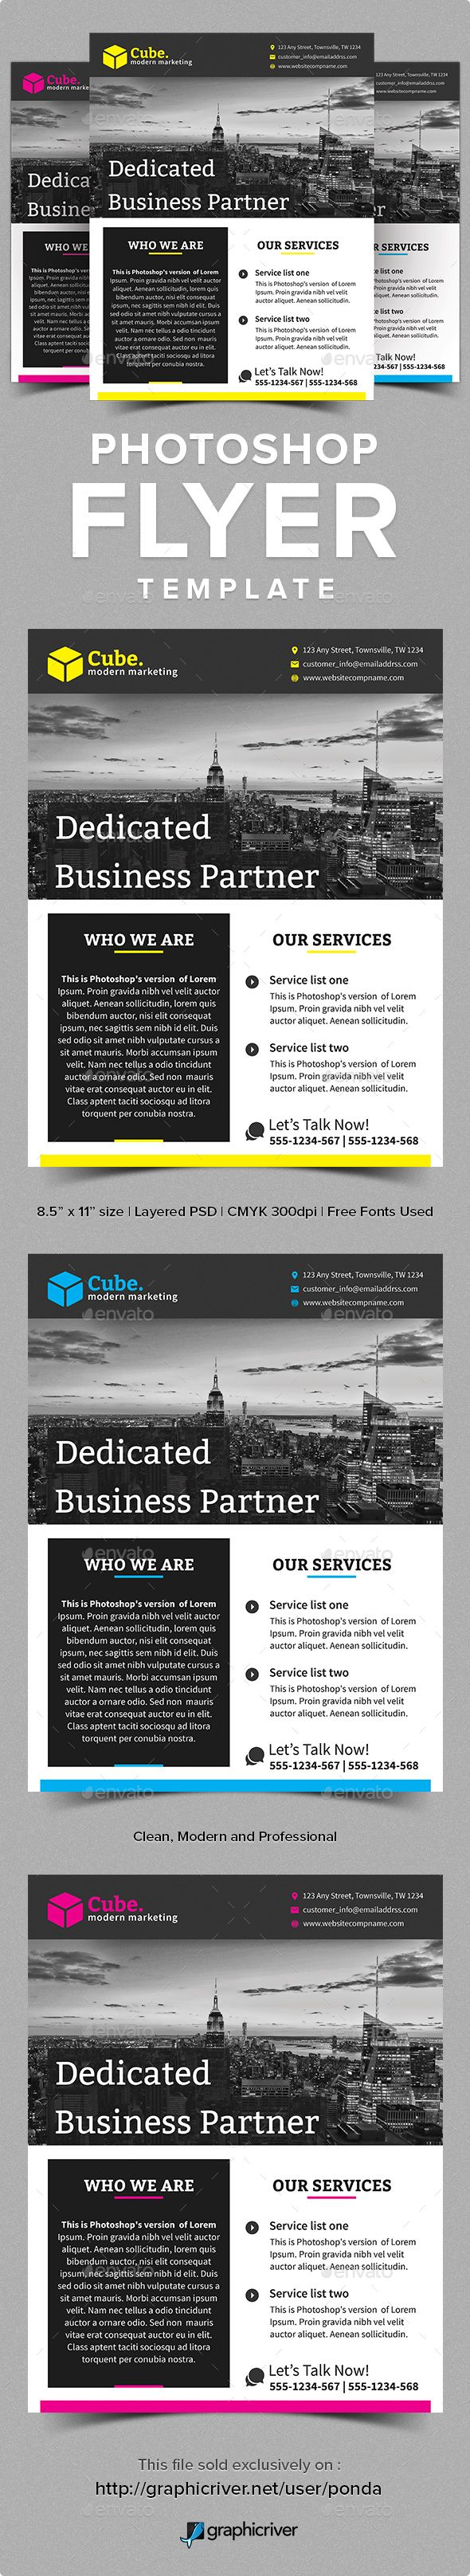 business corporate campaign flyer template psd here business corporate campaign flyer template psd here graphicriver